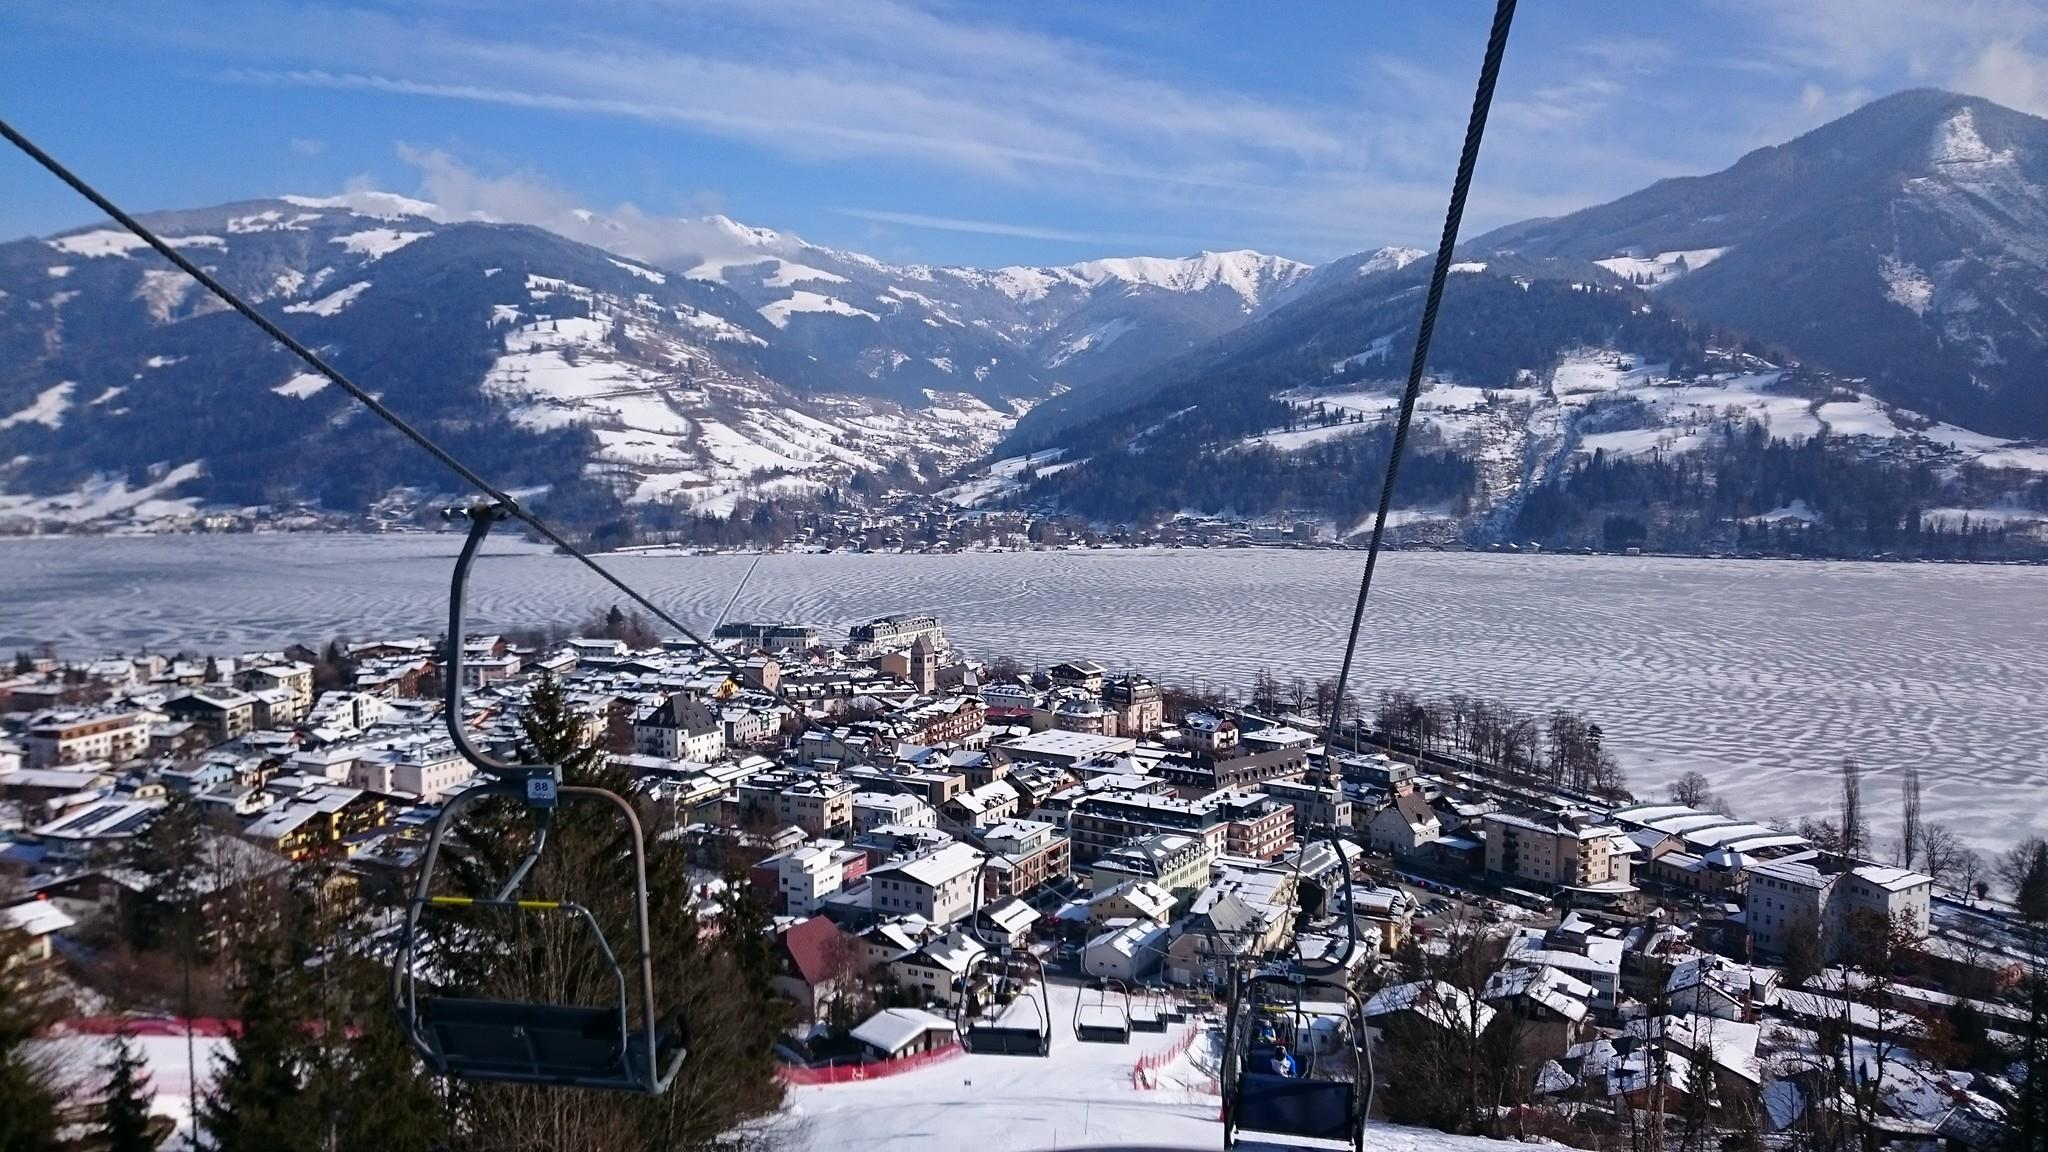 View from the training chairlift, across Zell am See, Austria